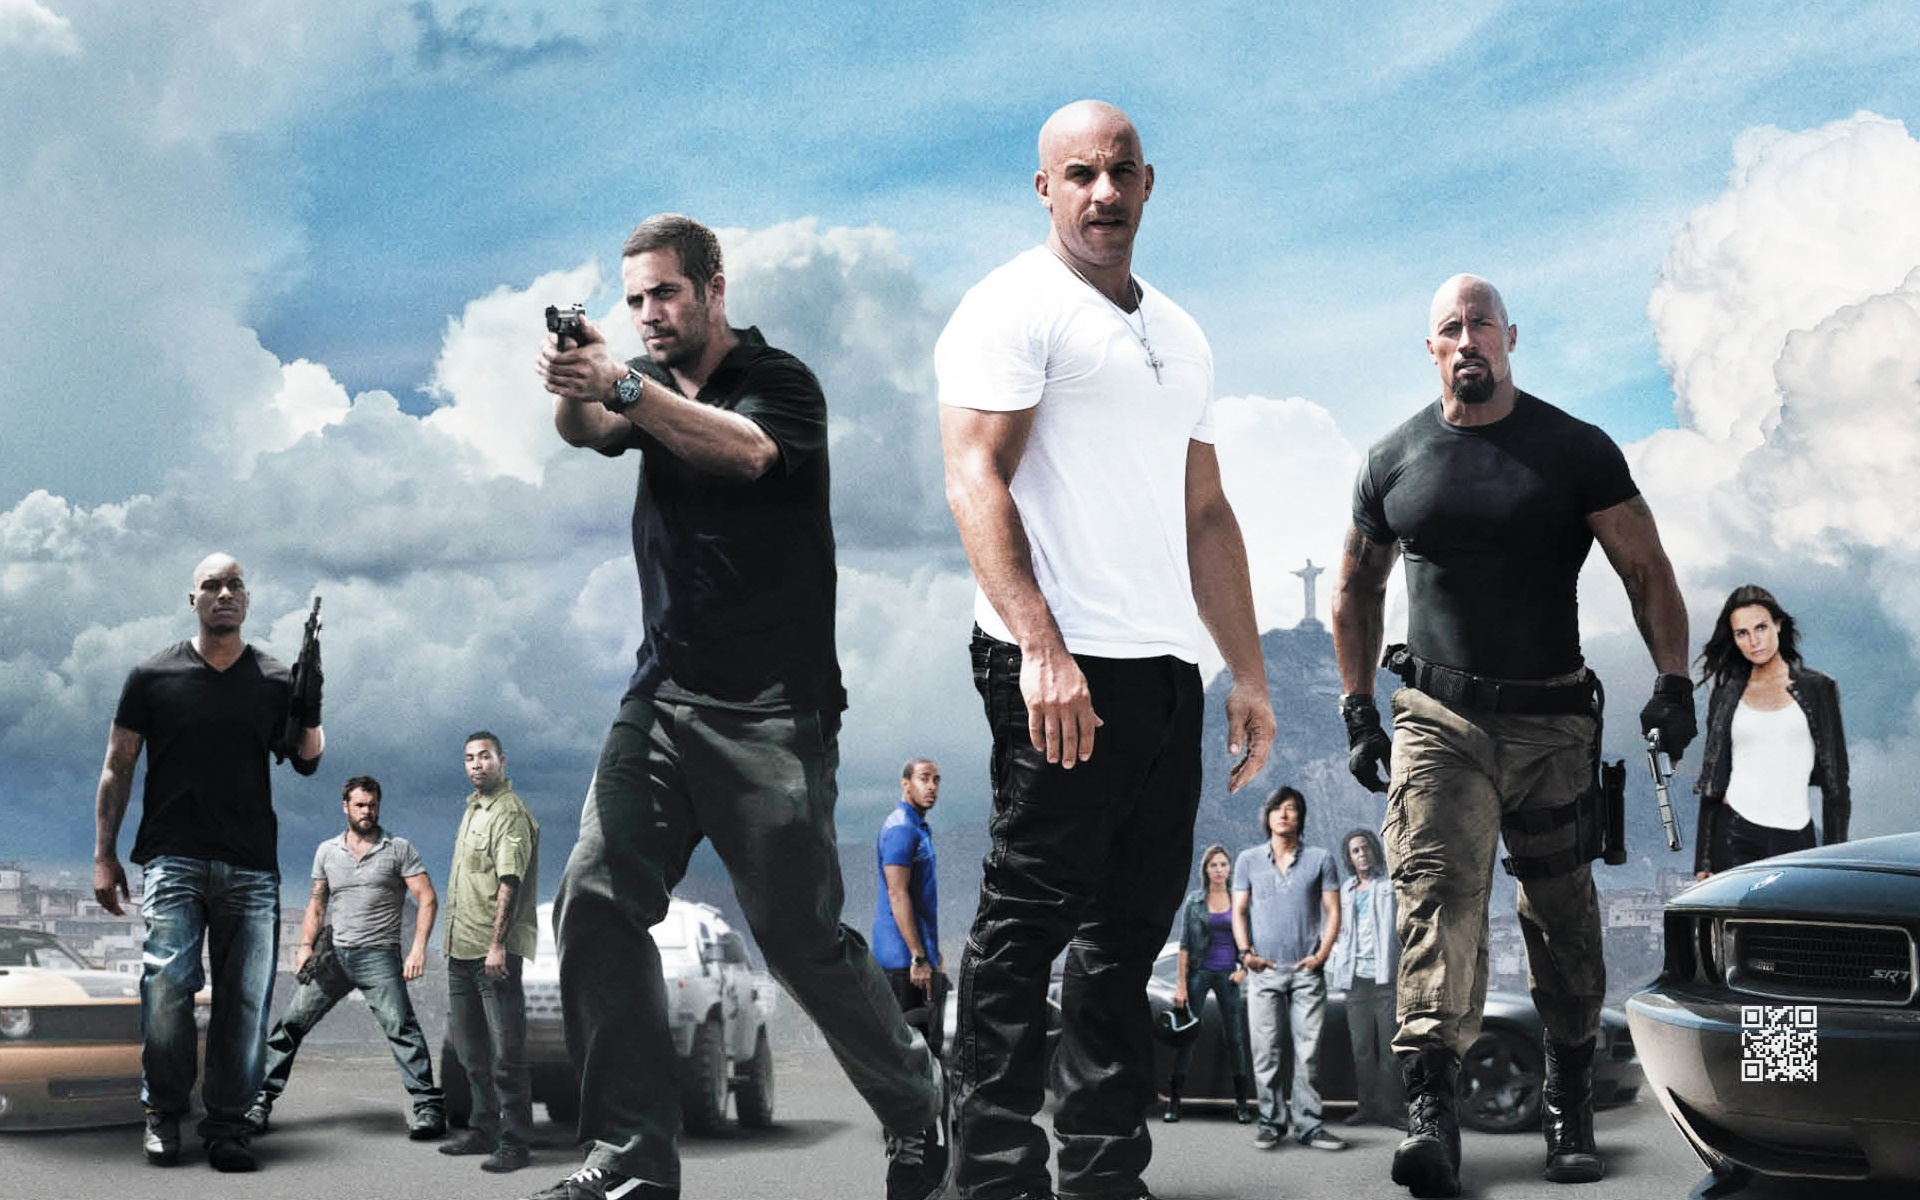 the fast and the furious 5 full movie free download